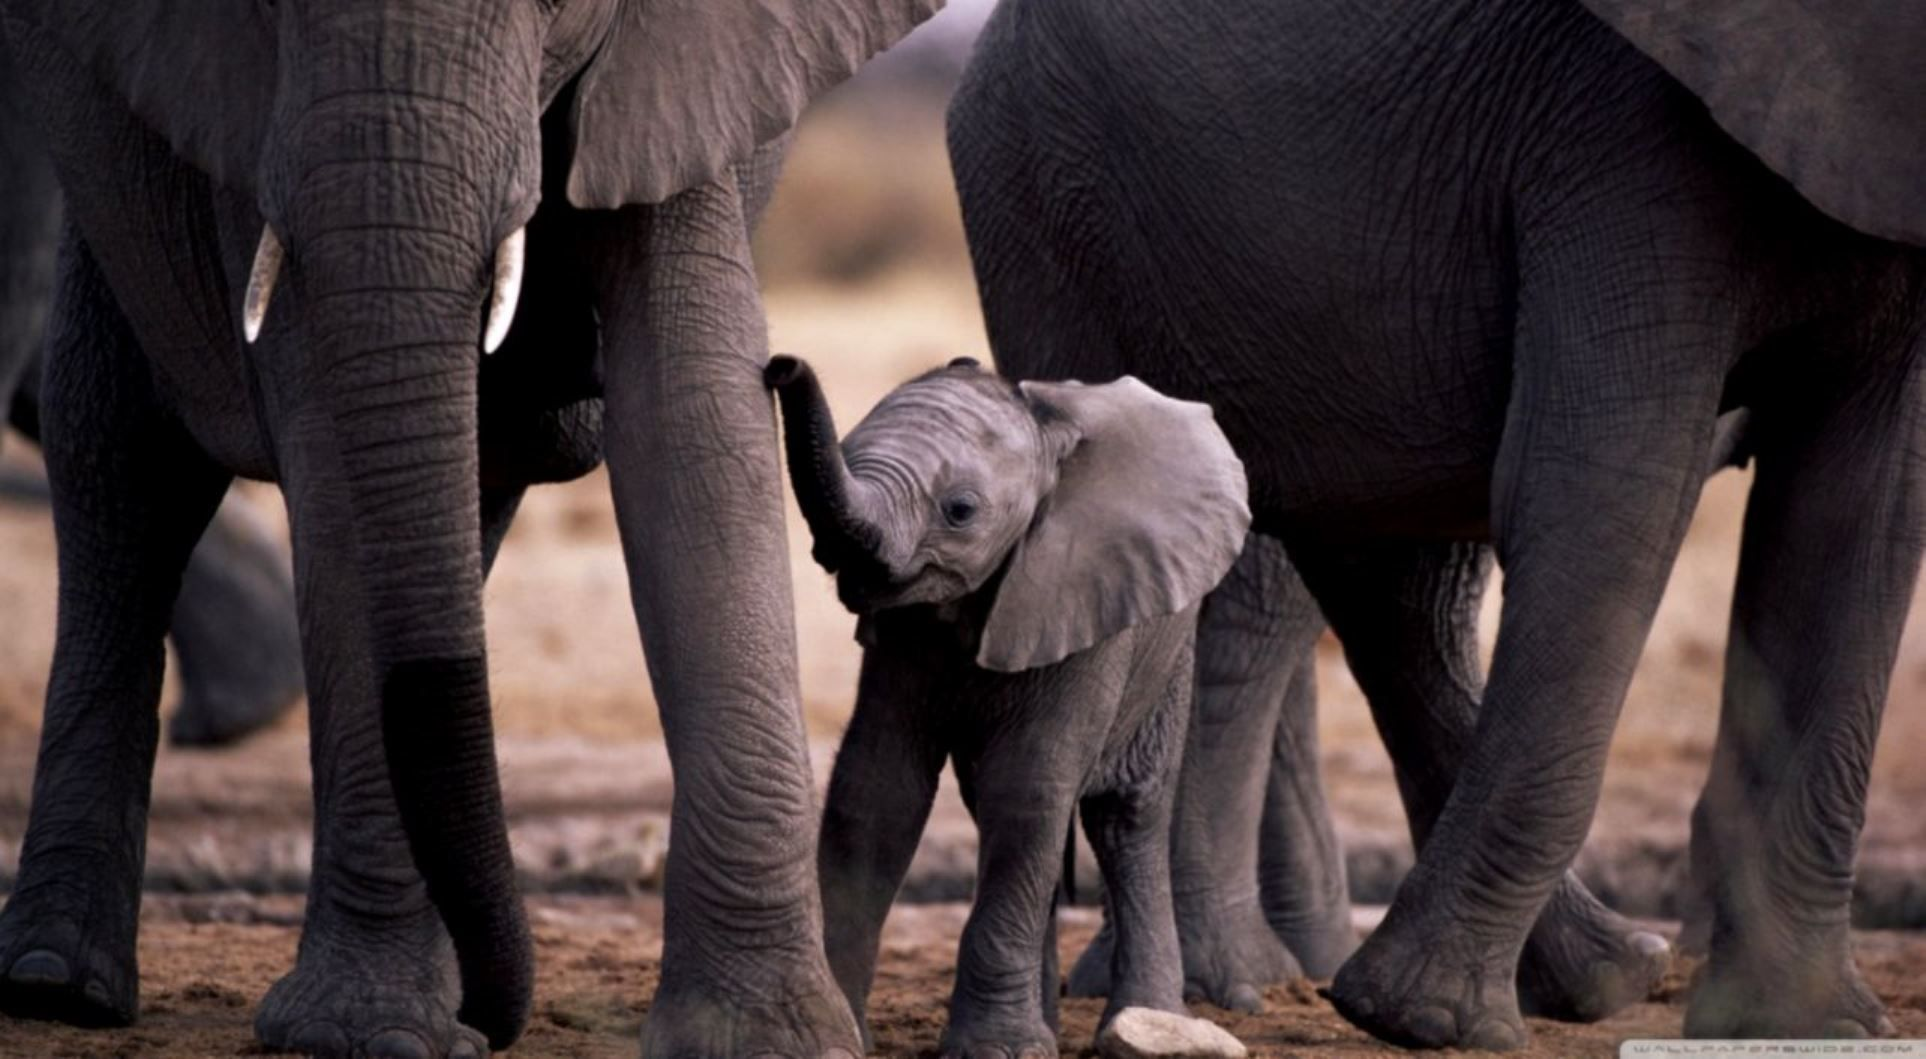 Pin By Terry Golden On My Elephant Keeper Collection Baby Elephant Elephant Cute Baby Elephant